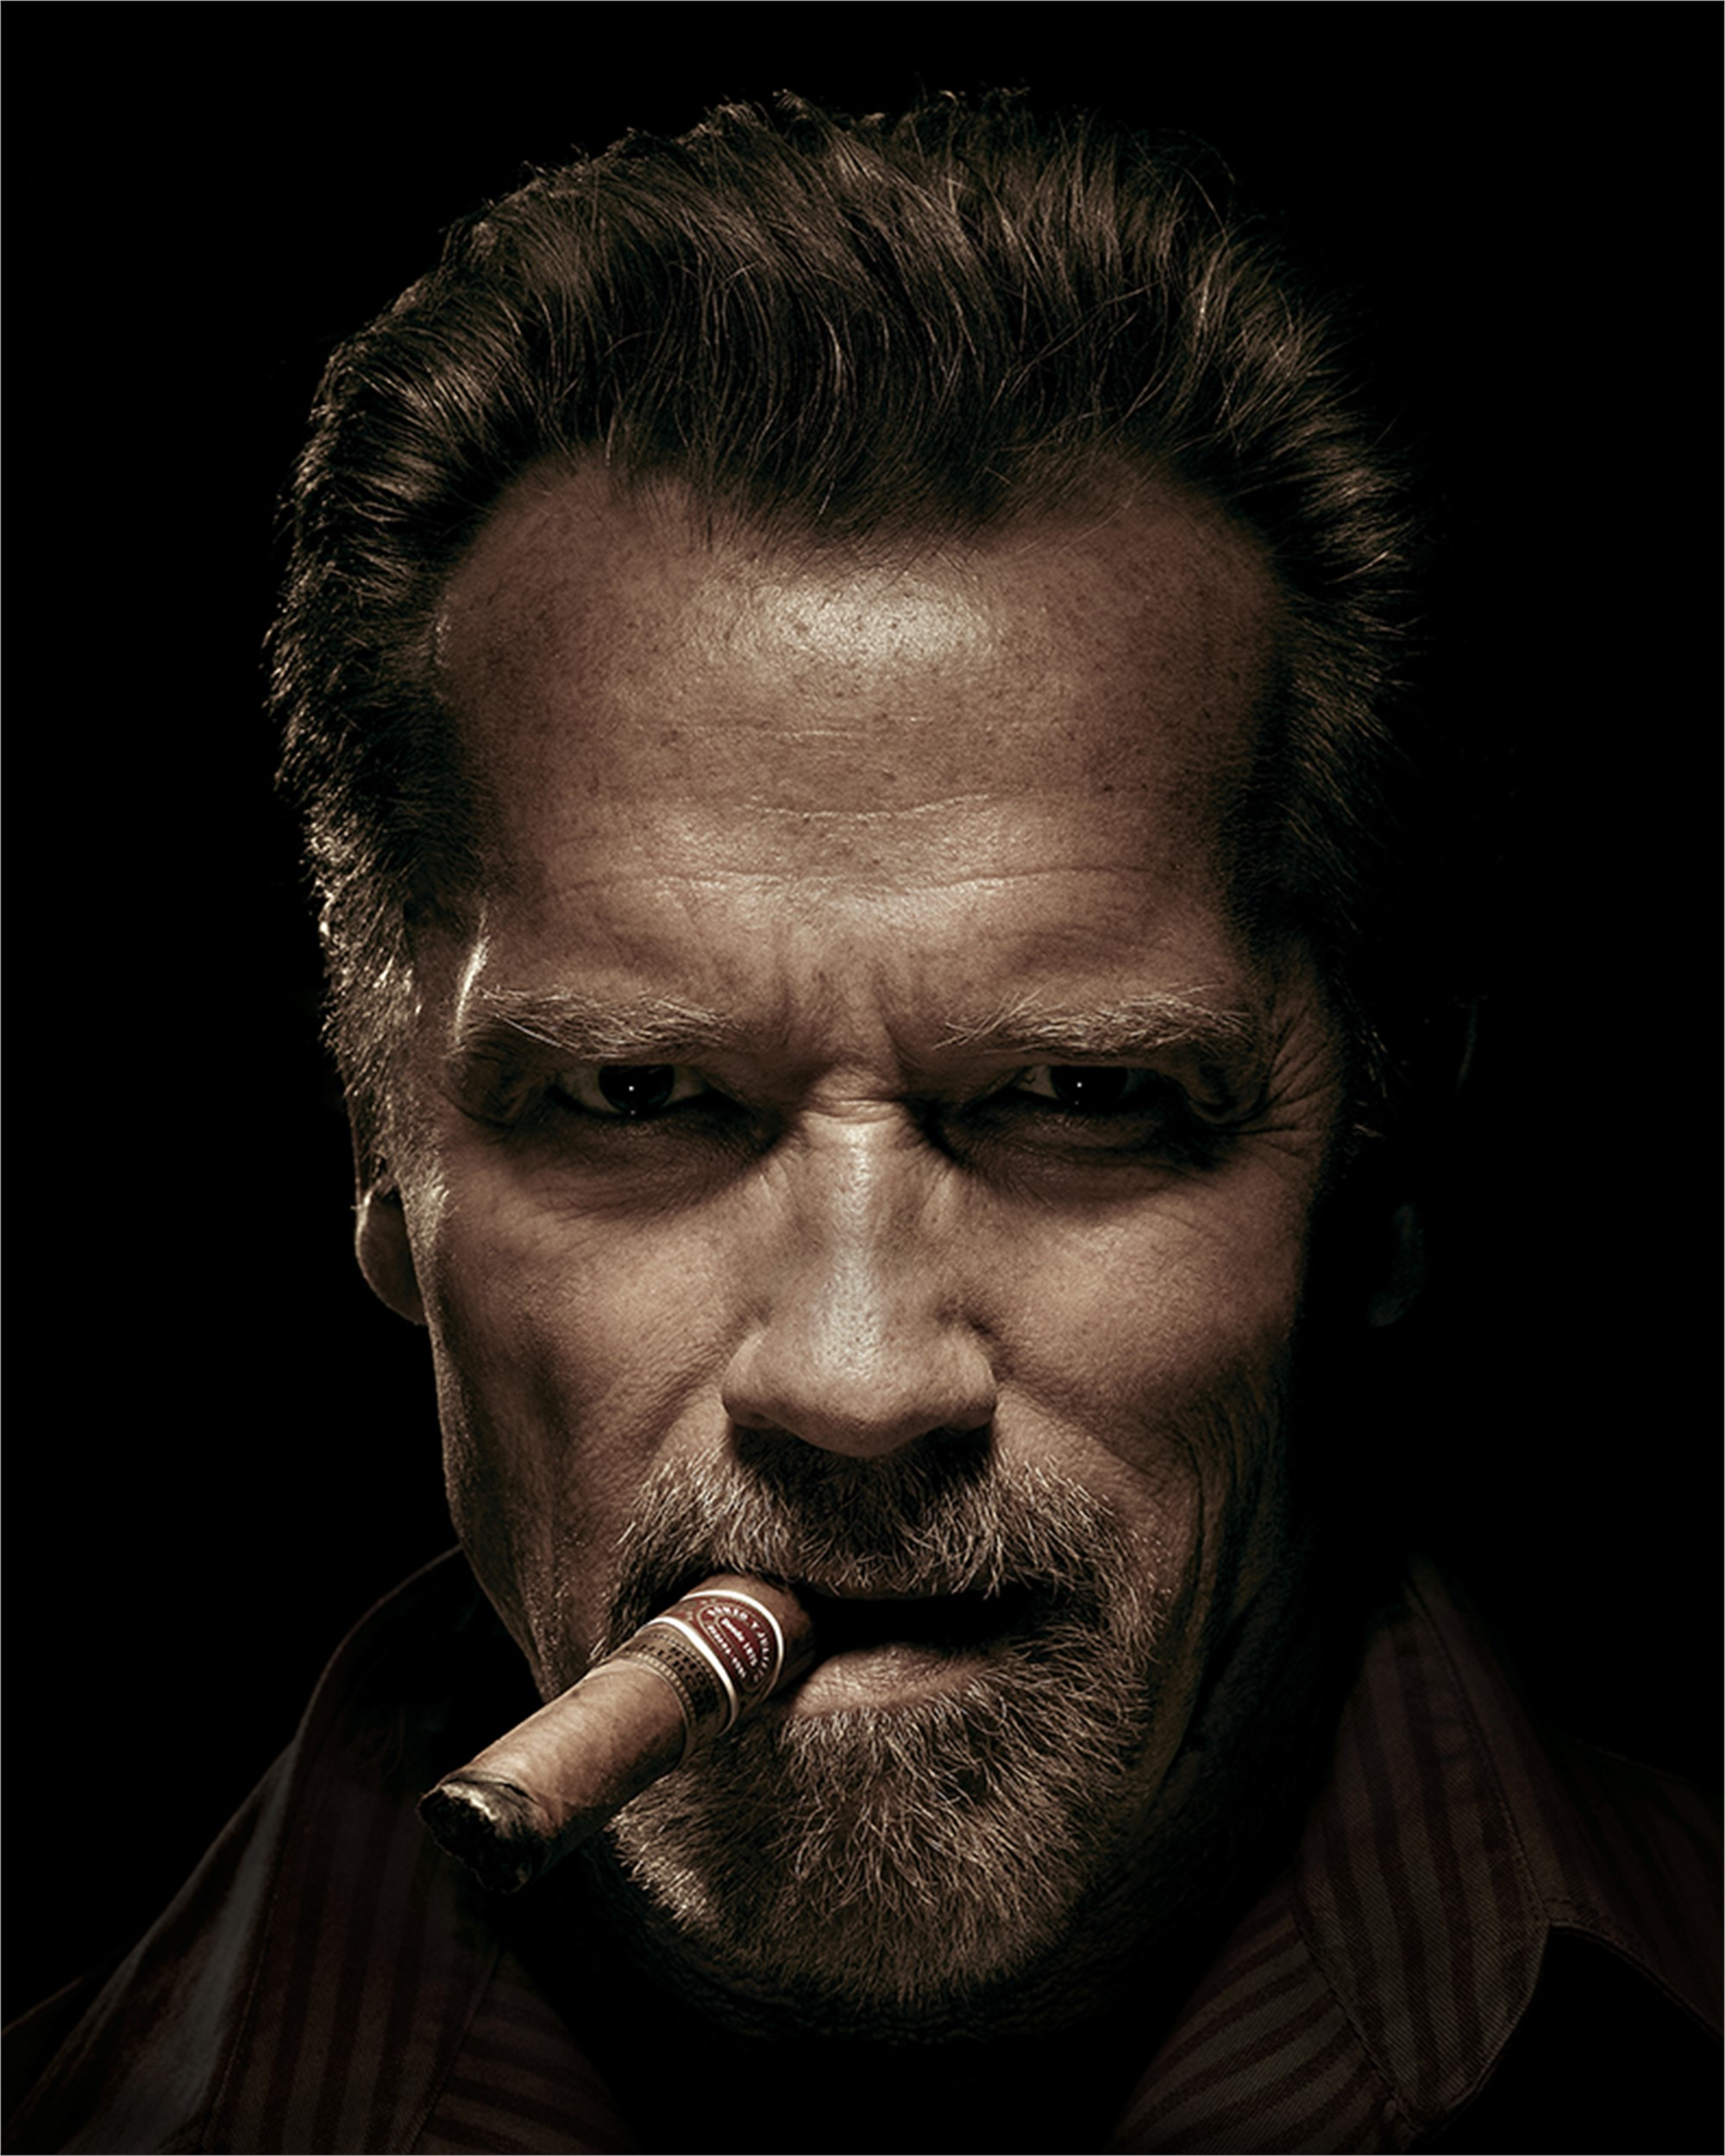 12014 Arnold Schwarzenegger with Cigar Sepia by Timothy White